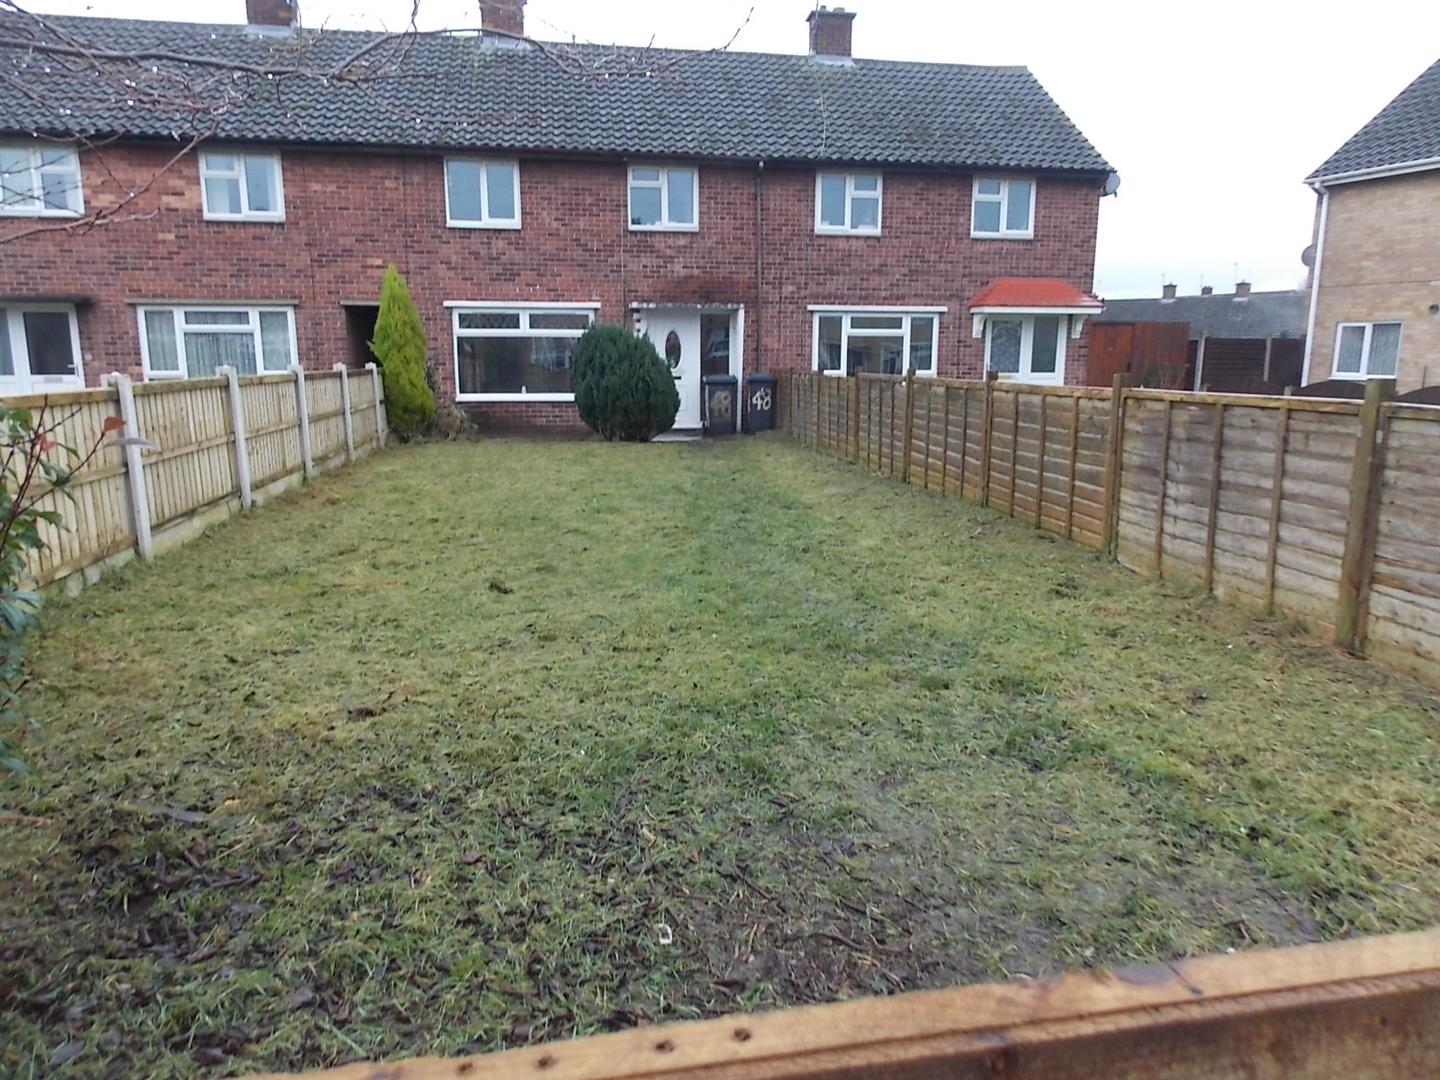 3 Bedrooms Terraced House for sale in Peveril Crescent, Sawley